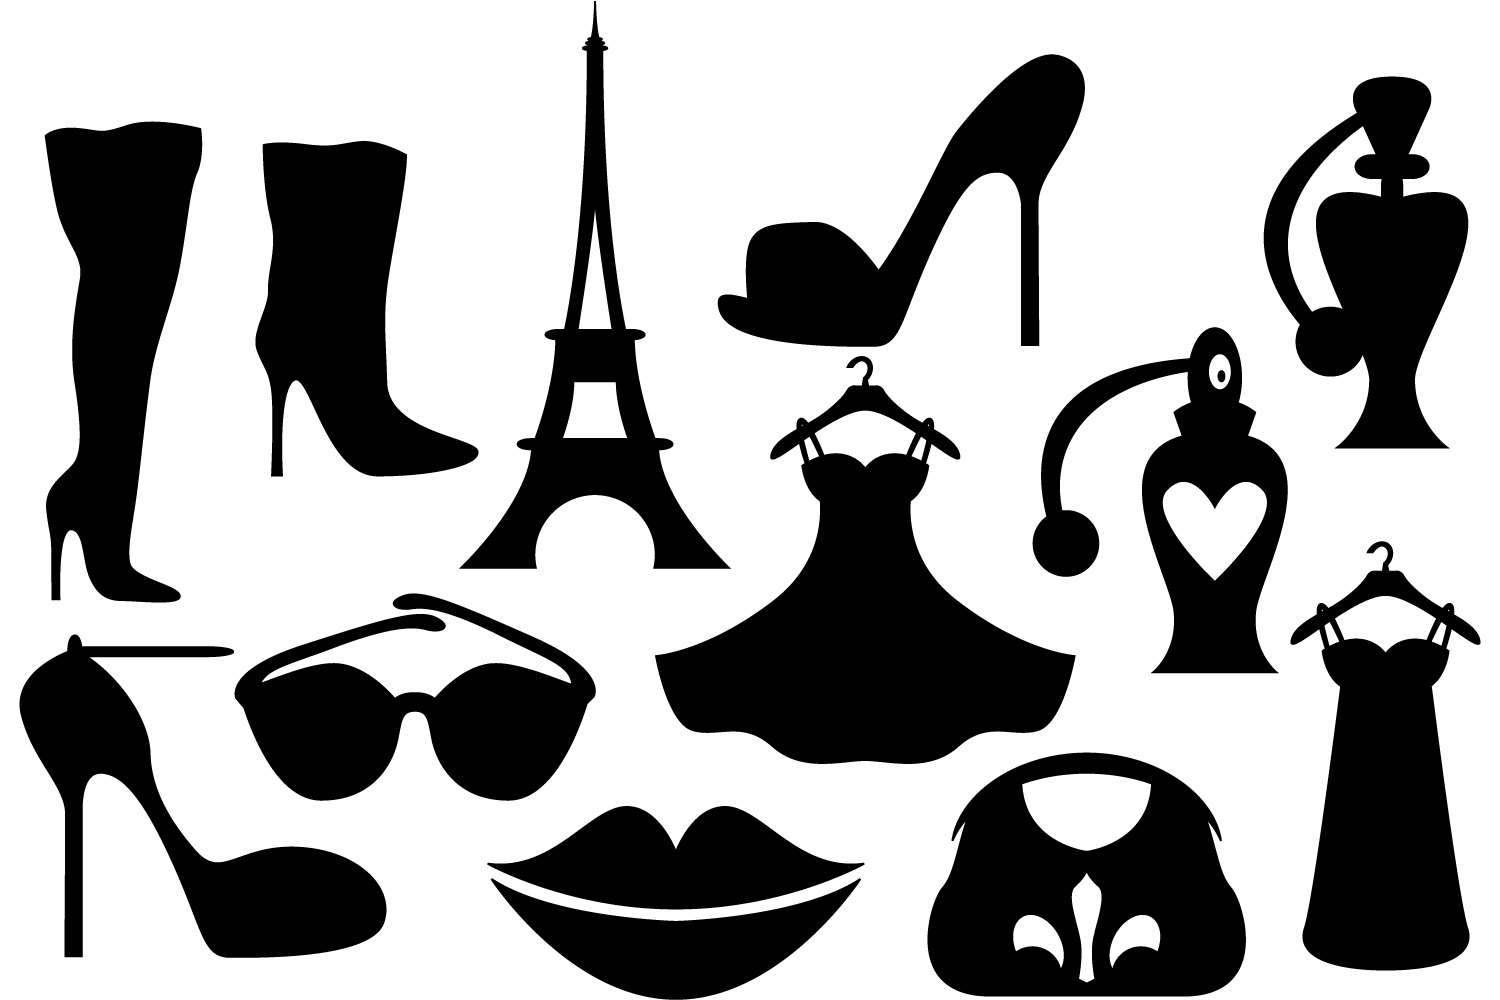 1500x1000 Paris Fashion Boutique Silhouette Clipa Design Bundles